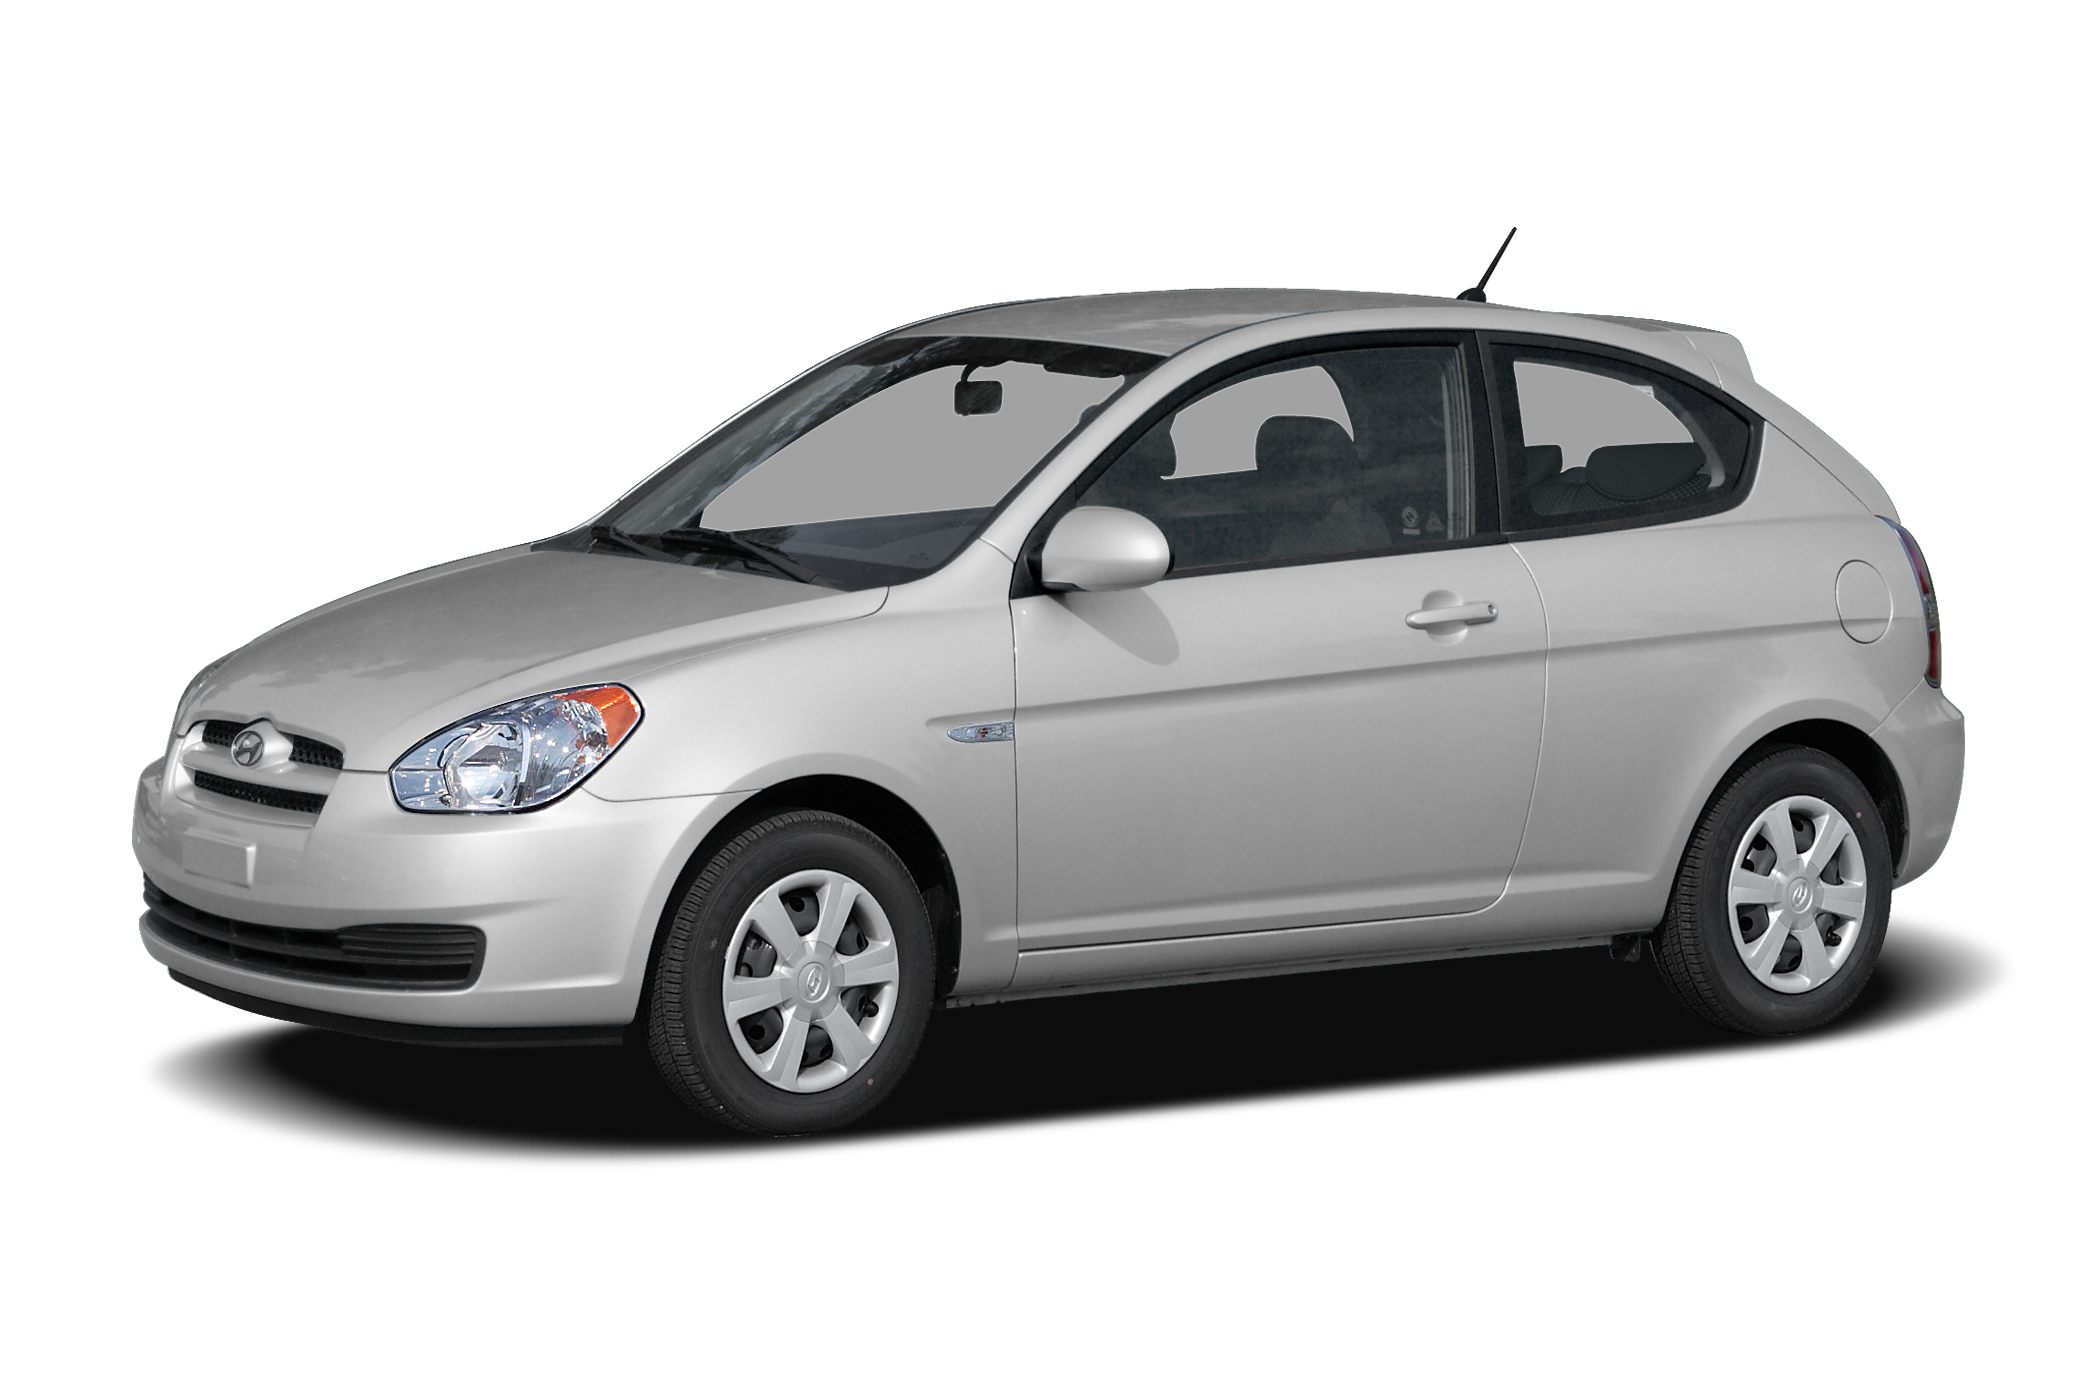 2008 Hyundai Accent SE Hatchback for sale in Attleboro for $5,988 with 101,157 miles